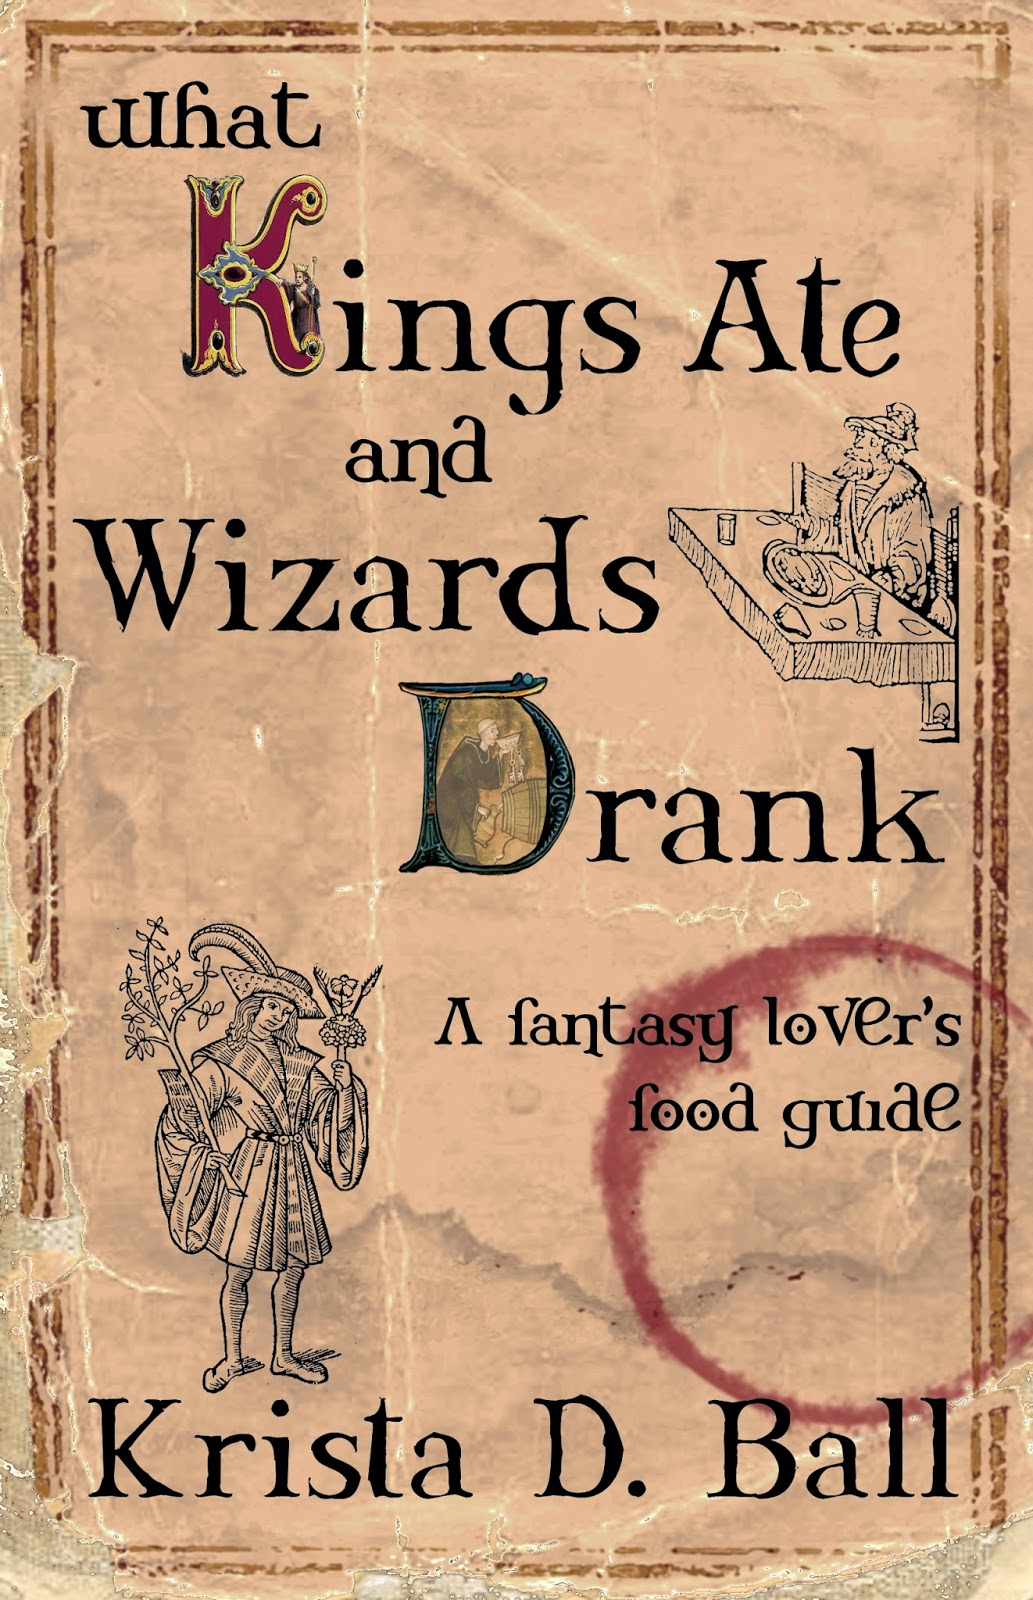 https://www.goodreads.com/book/show/16122737-what-kings-ate-and-wizards-drank